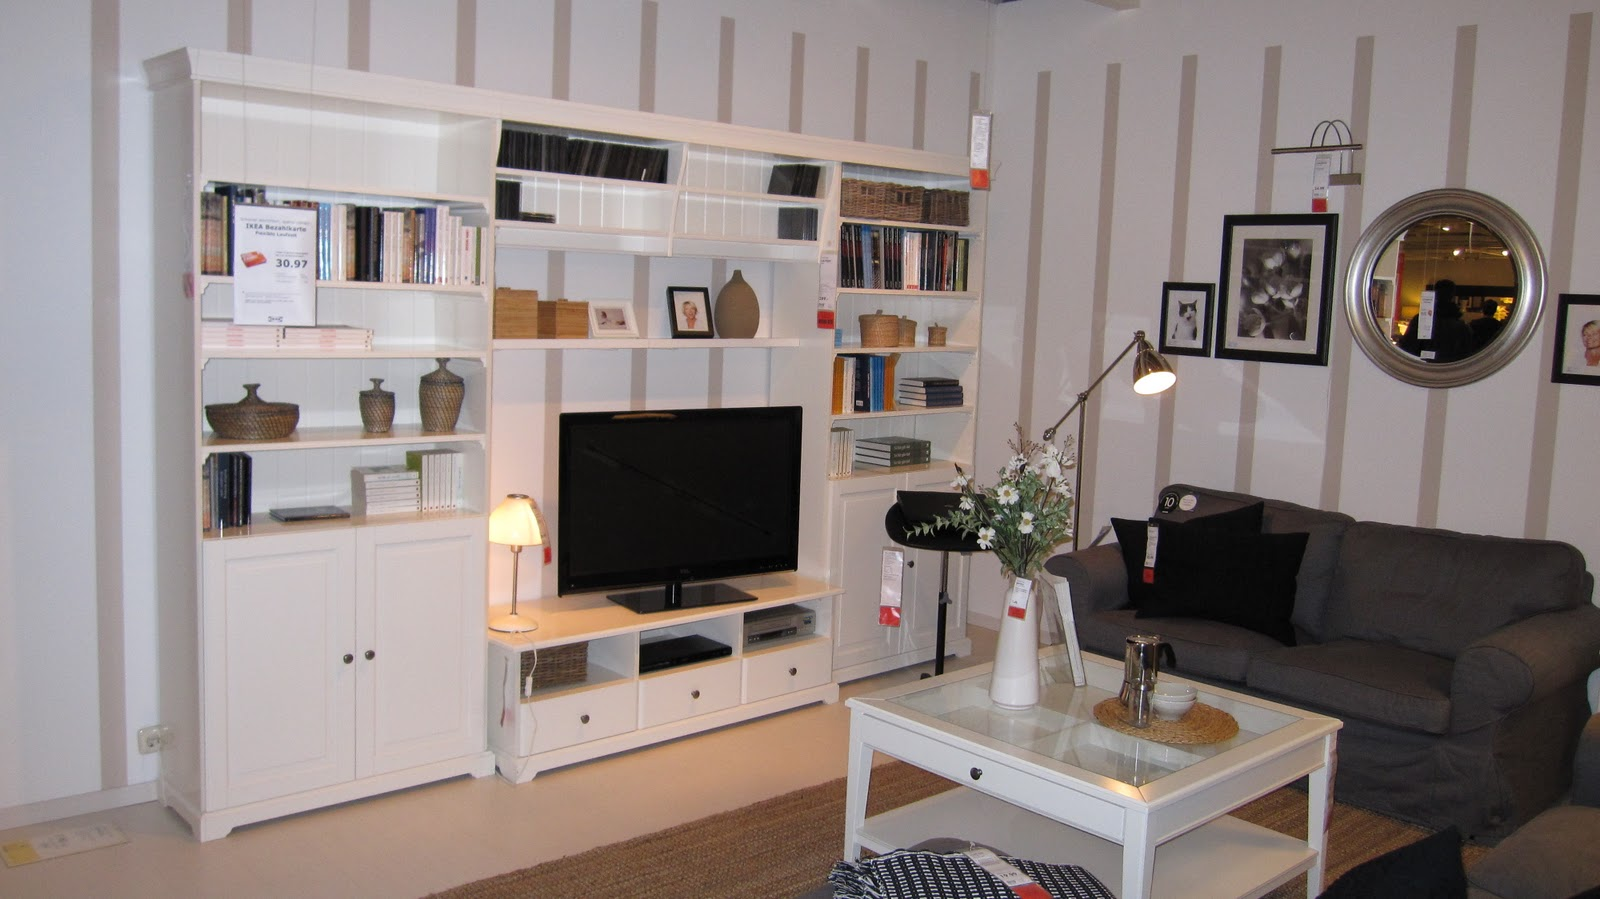 kleines gelbes haus januar 2012. Black Bedroom Furniture Sets. Home Design Ideas